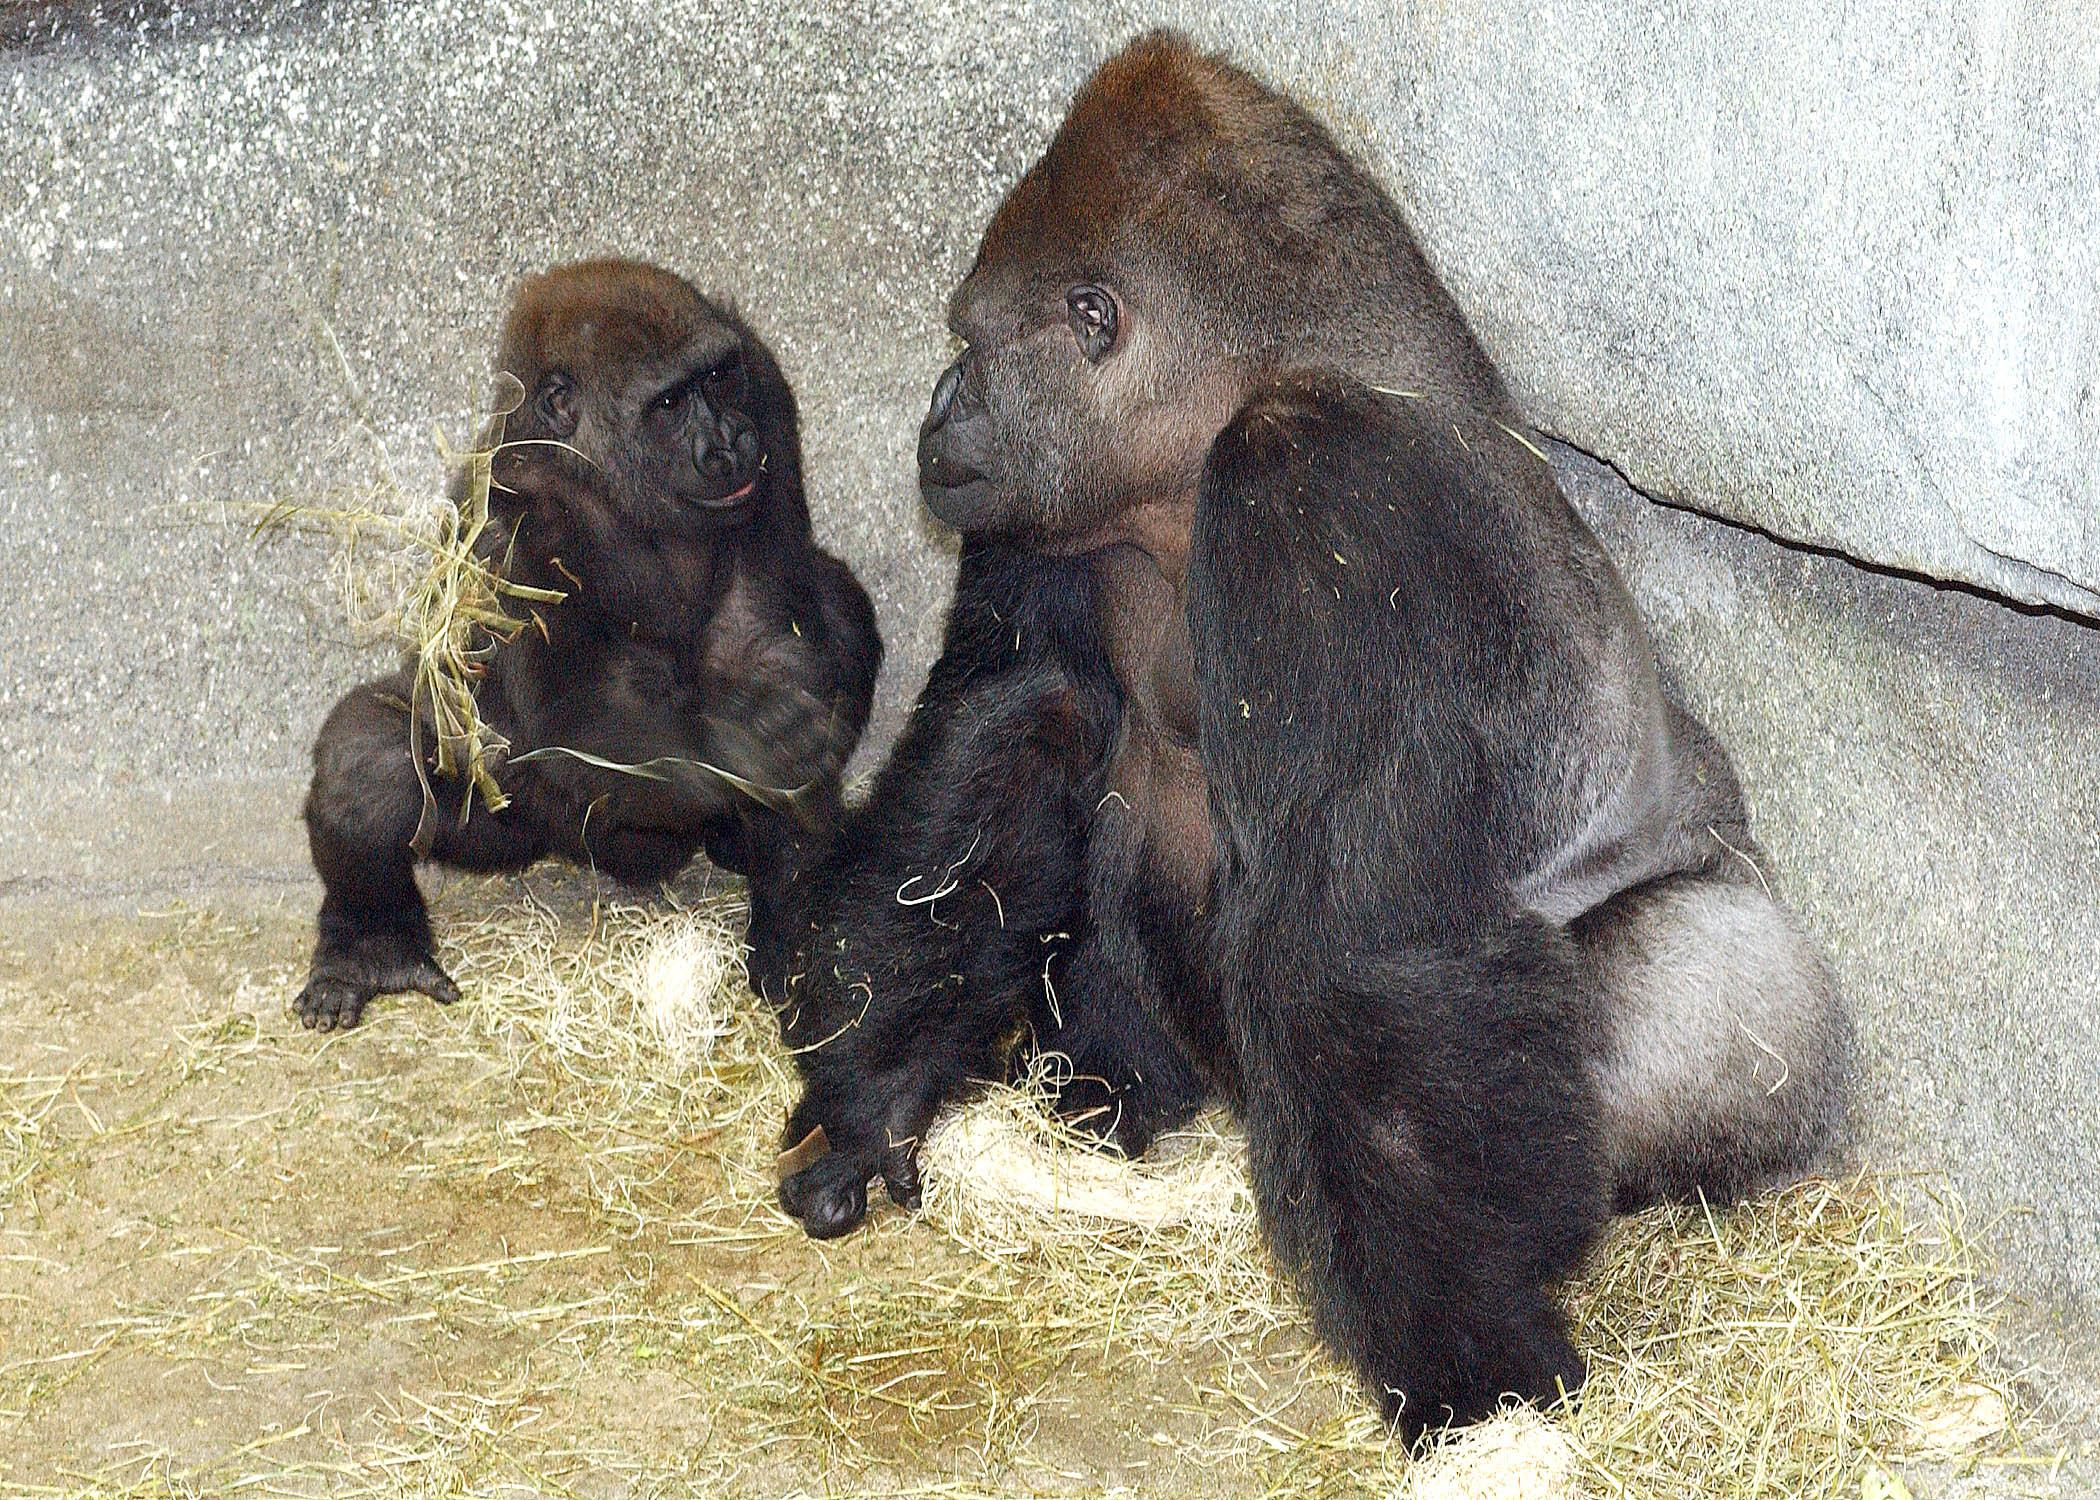 Ramar and son Nadaya in 2005. (Courtesy Chicago Zoological Society)